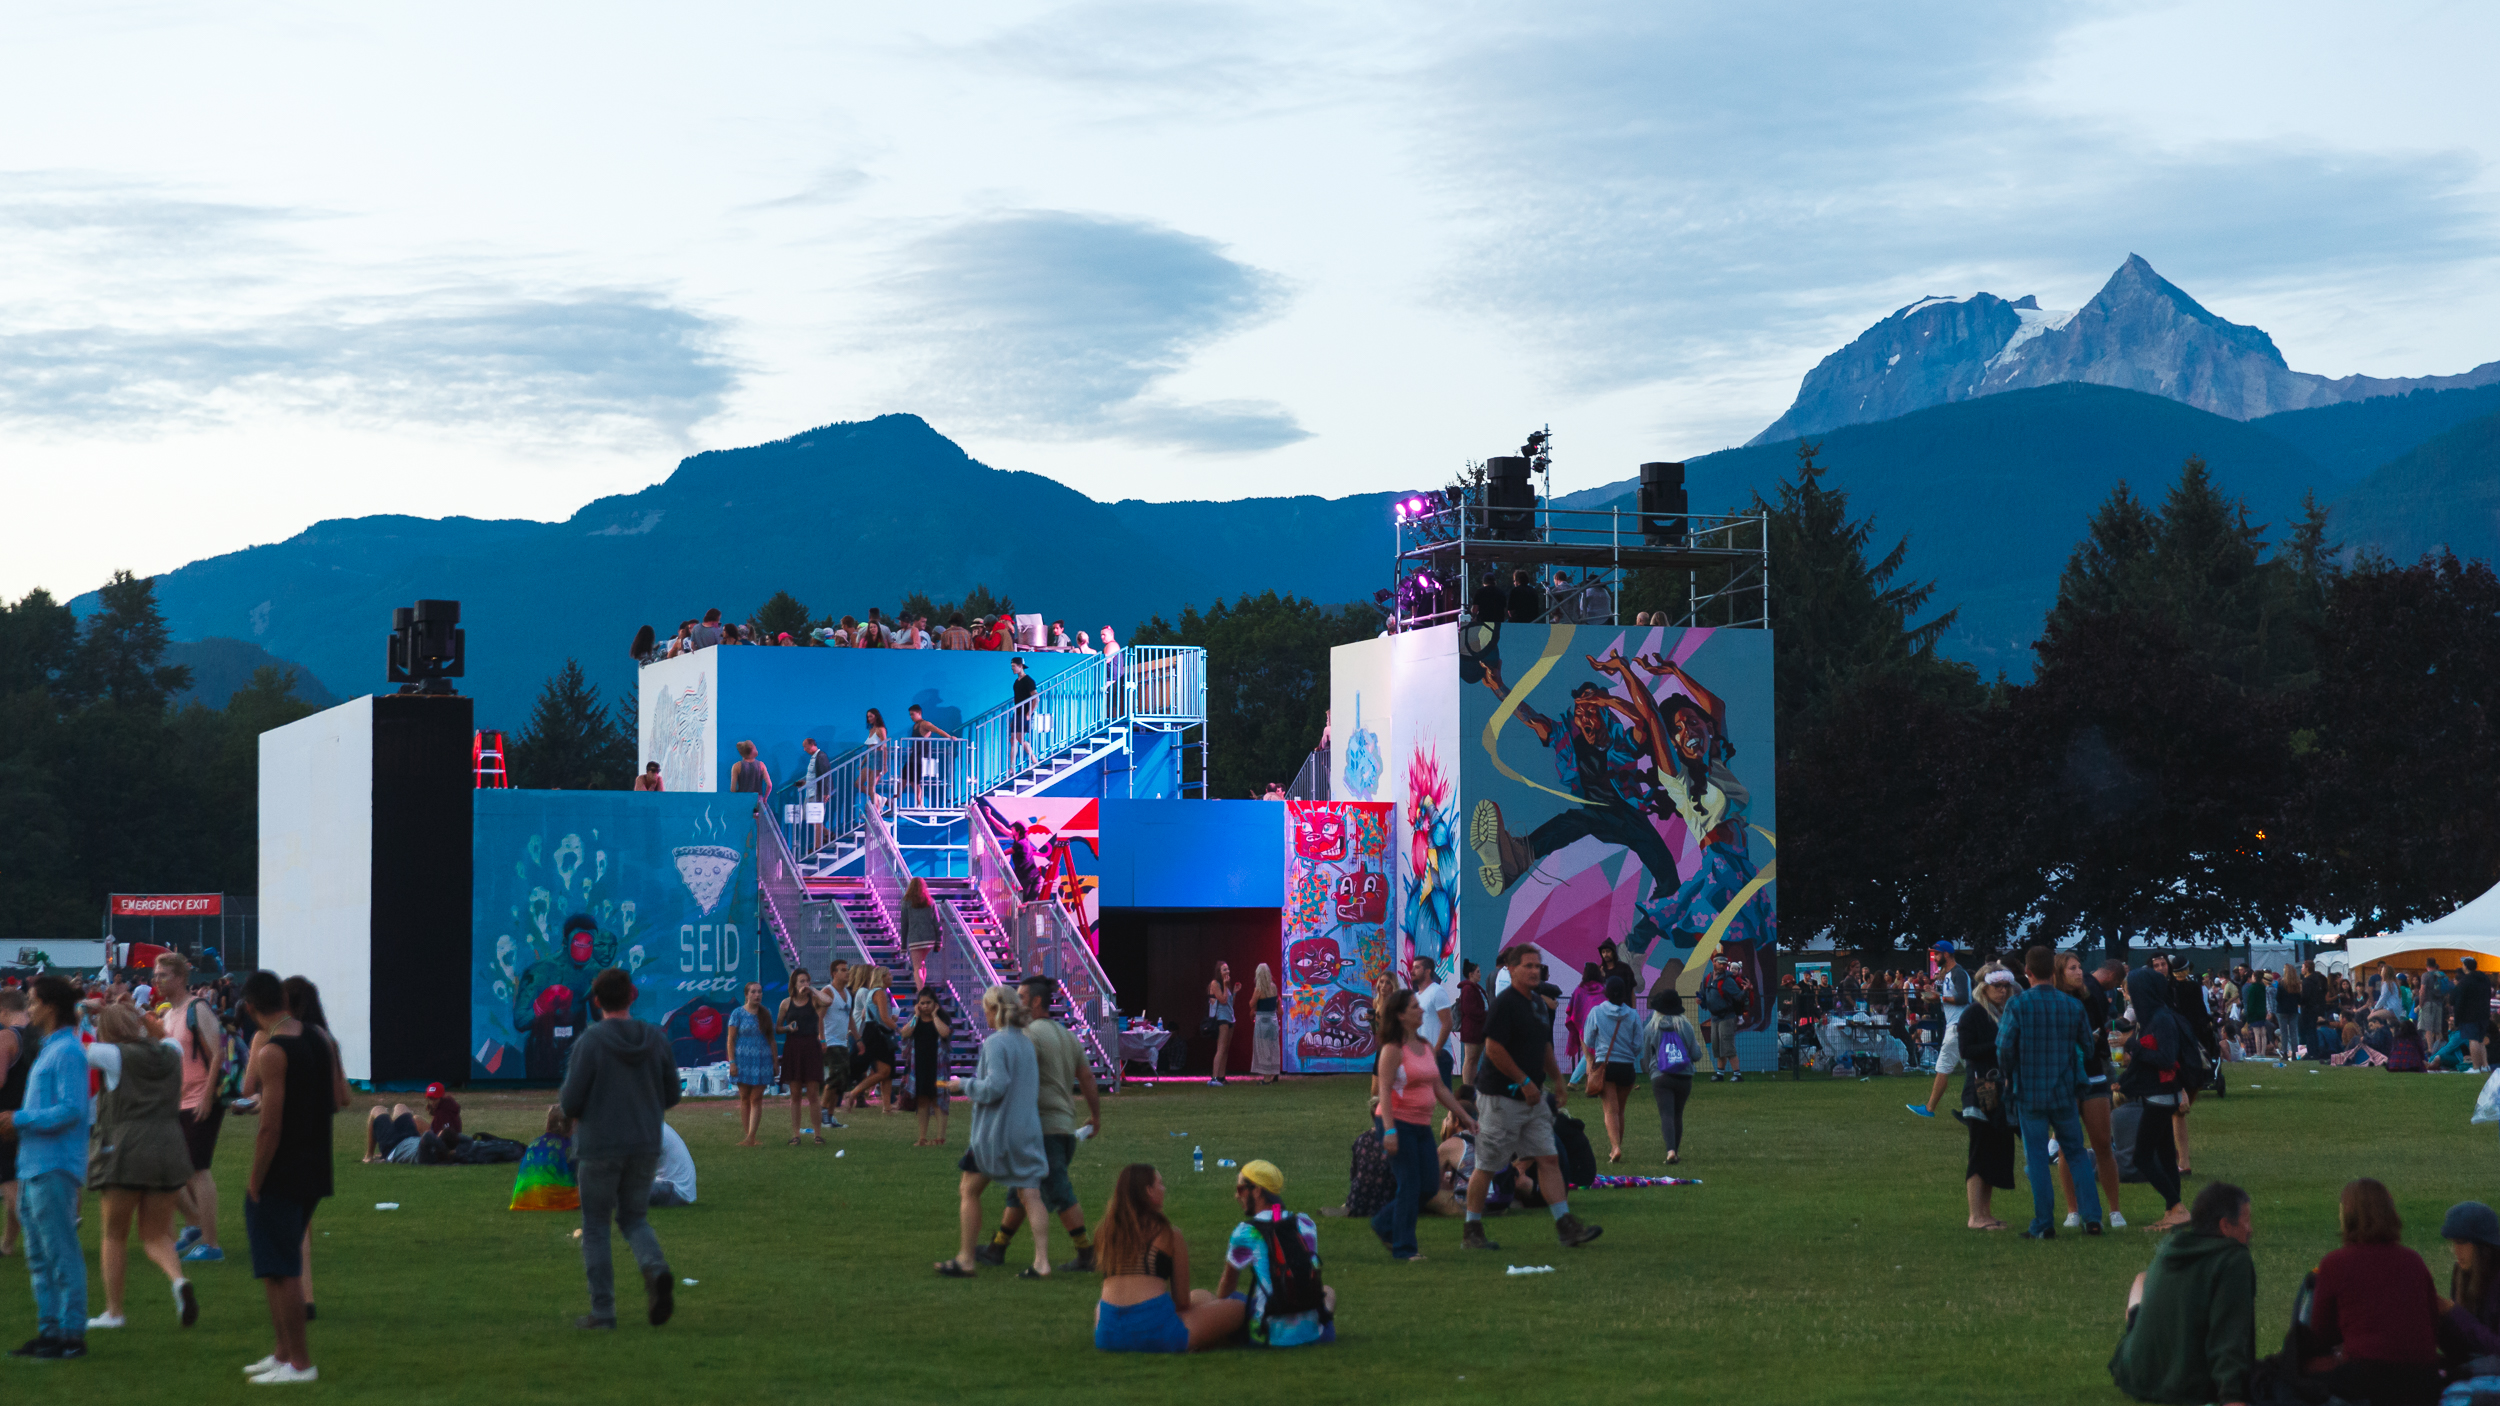 Squamish-Valley-Music-Festival-image-41.jpg